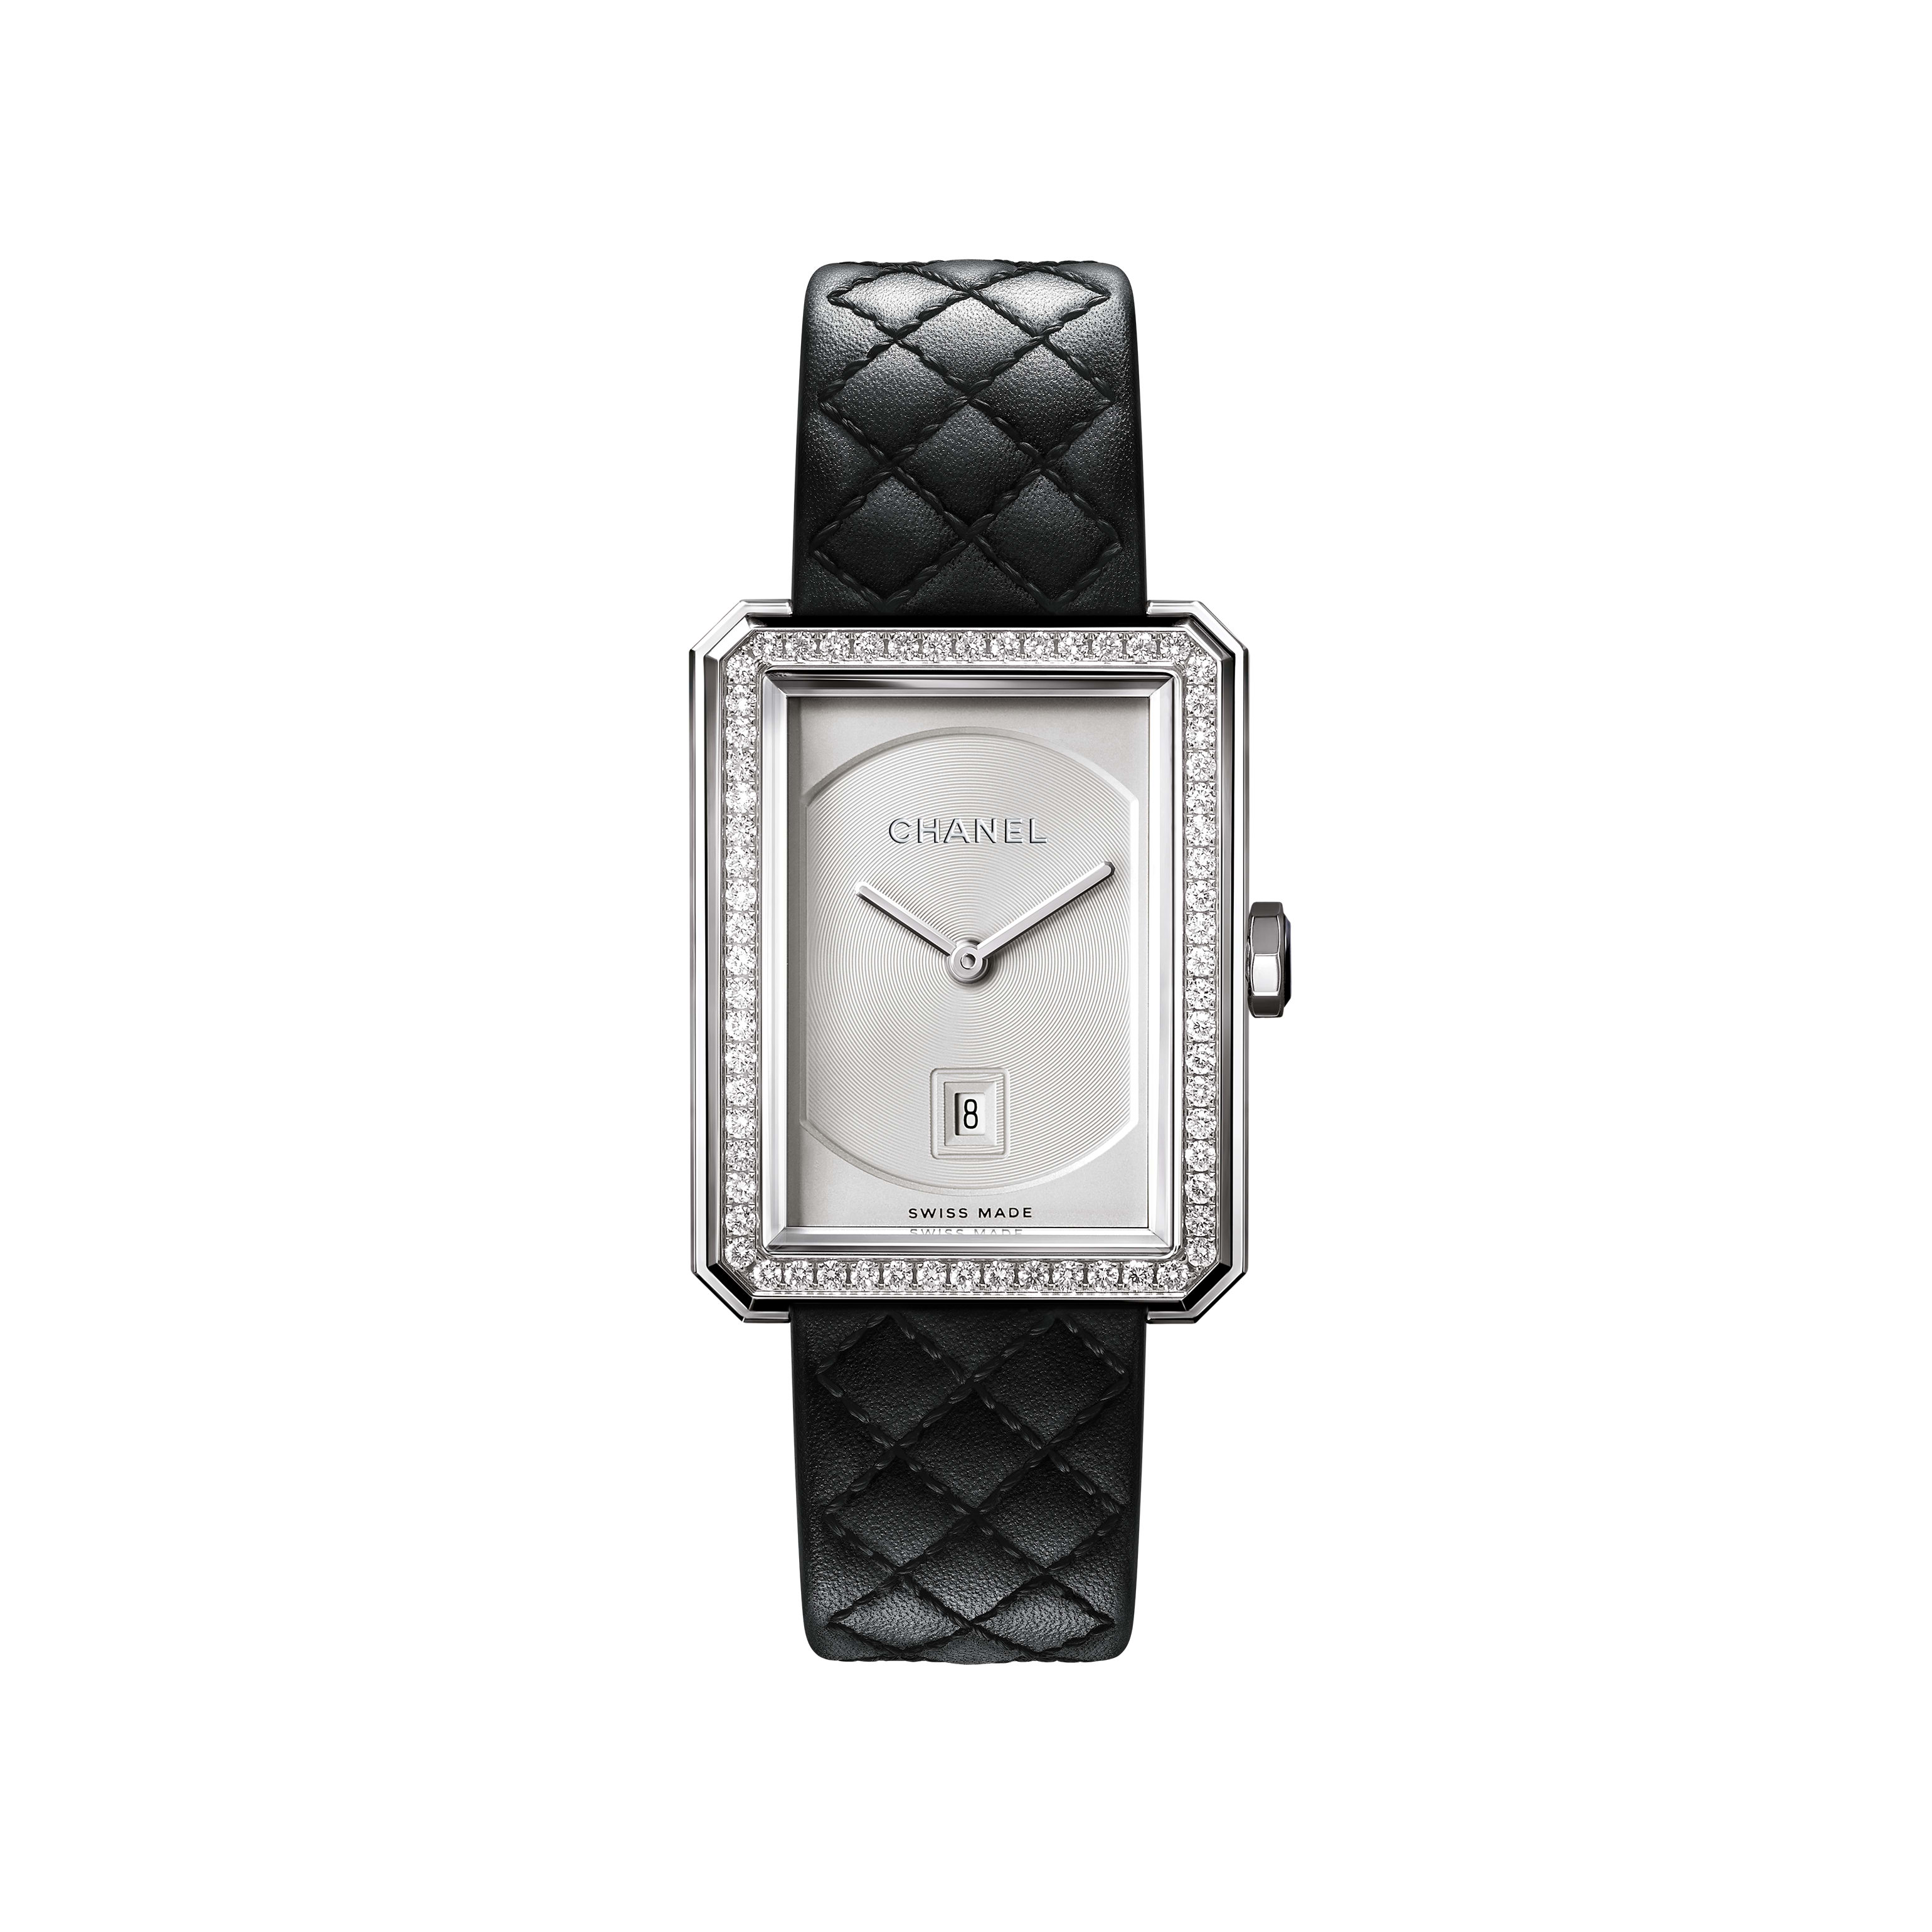 BOY·FRIEND Watch - Medium version, steel and diamonds, quilted pattern calfskin strap - CHANEL - Default view - see standard sized version